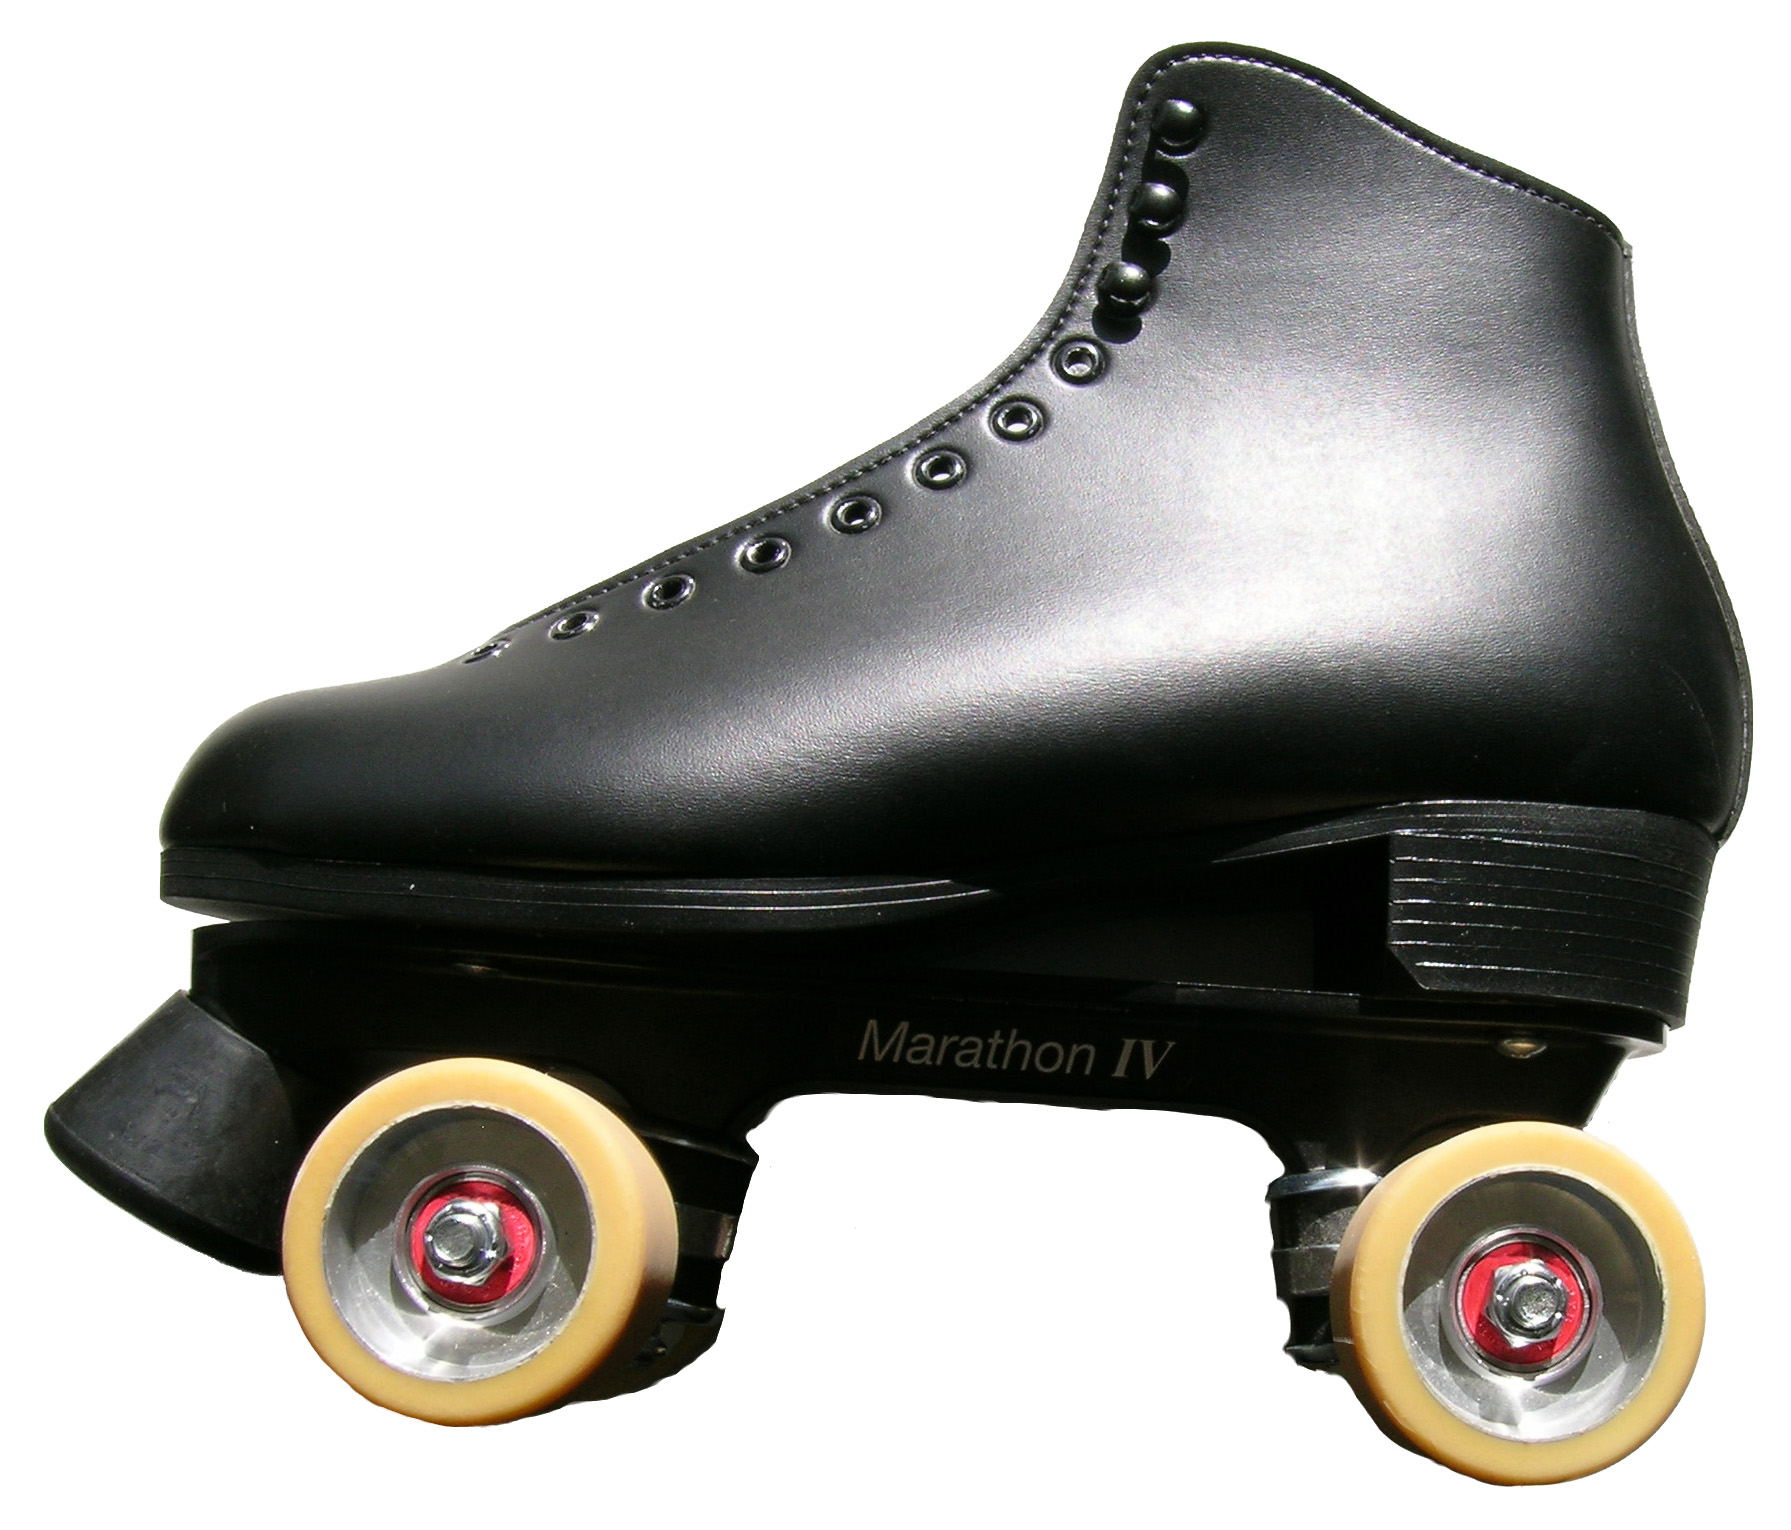 Dominion complete roller skates with labeda elegant wheels size 9 thumbnail 1